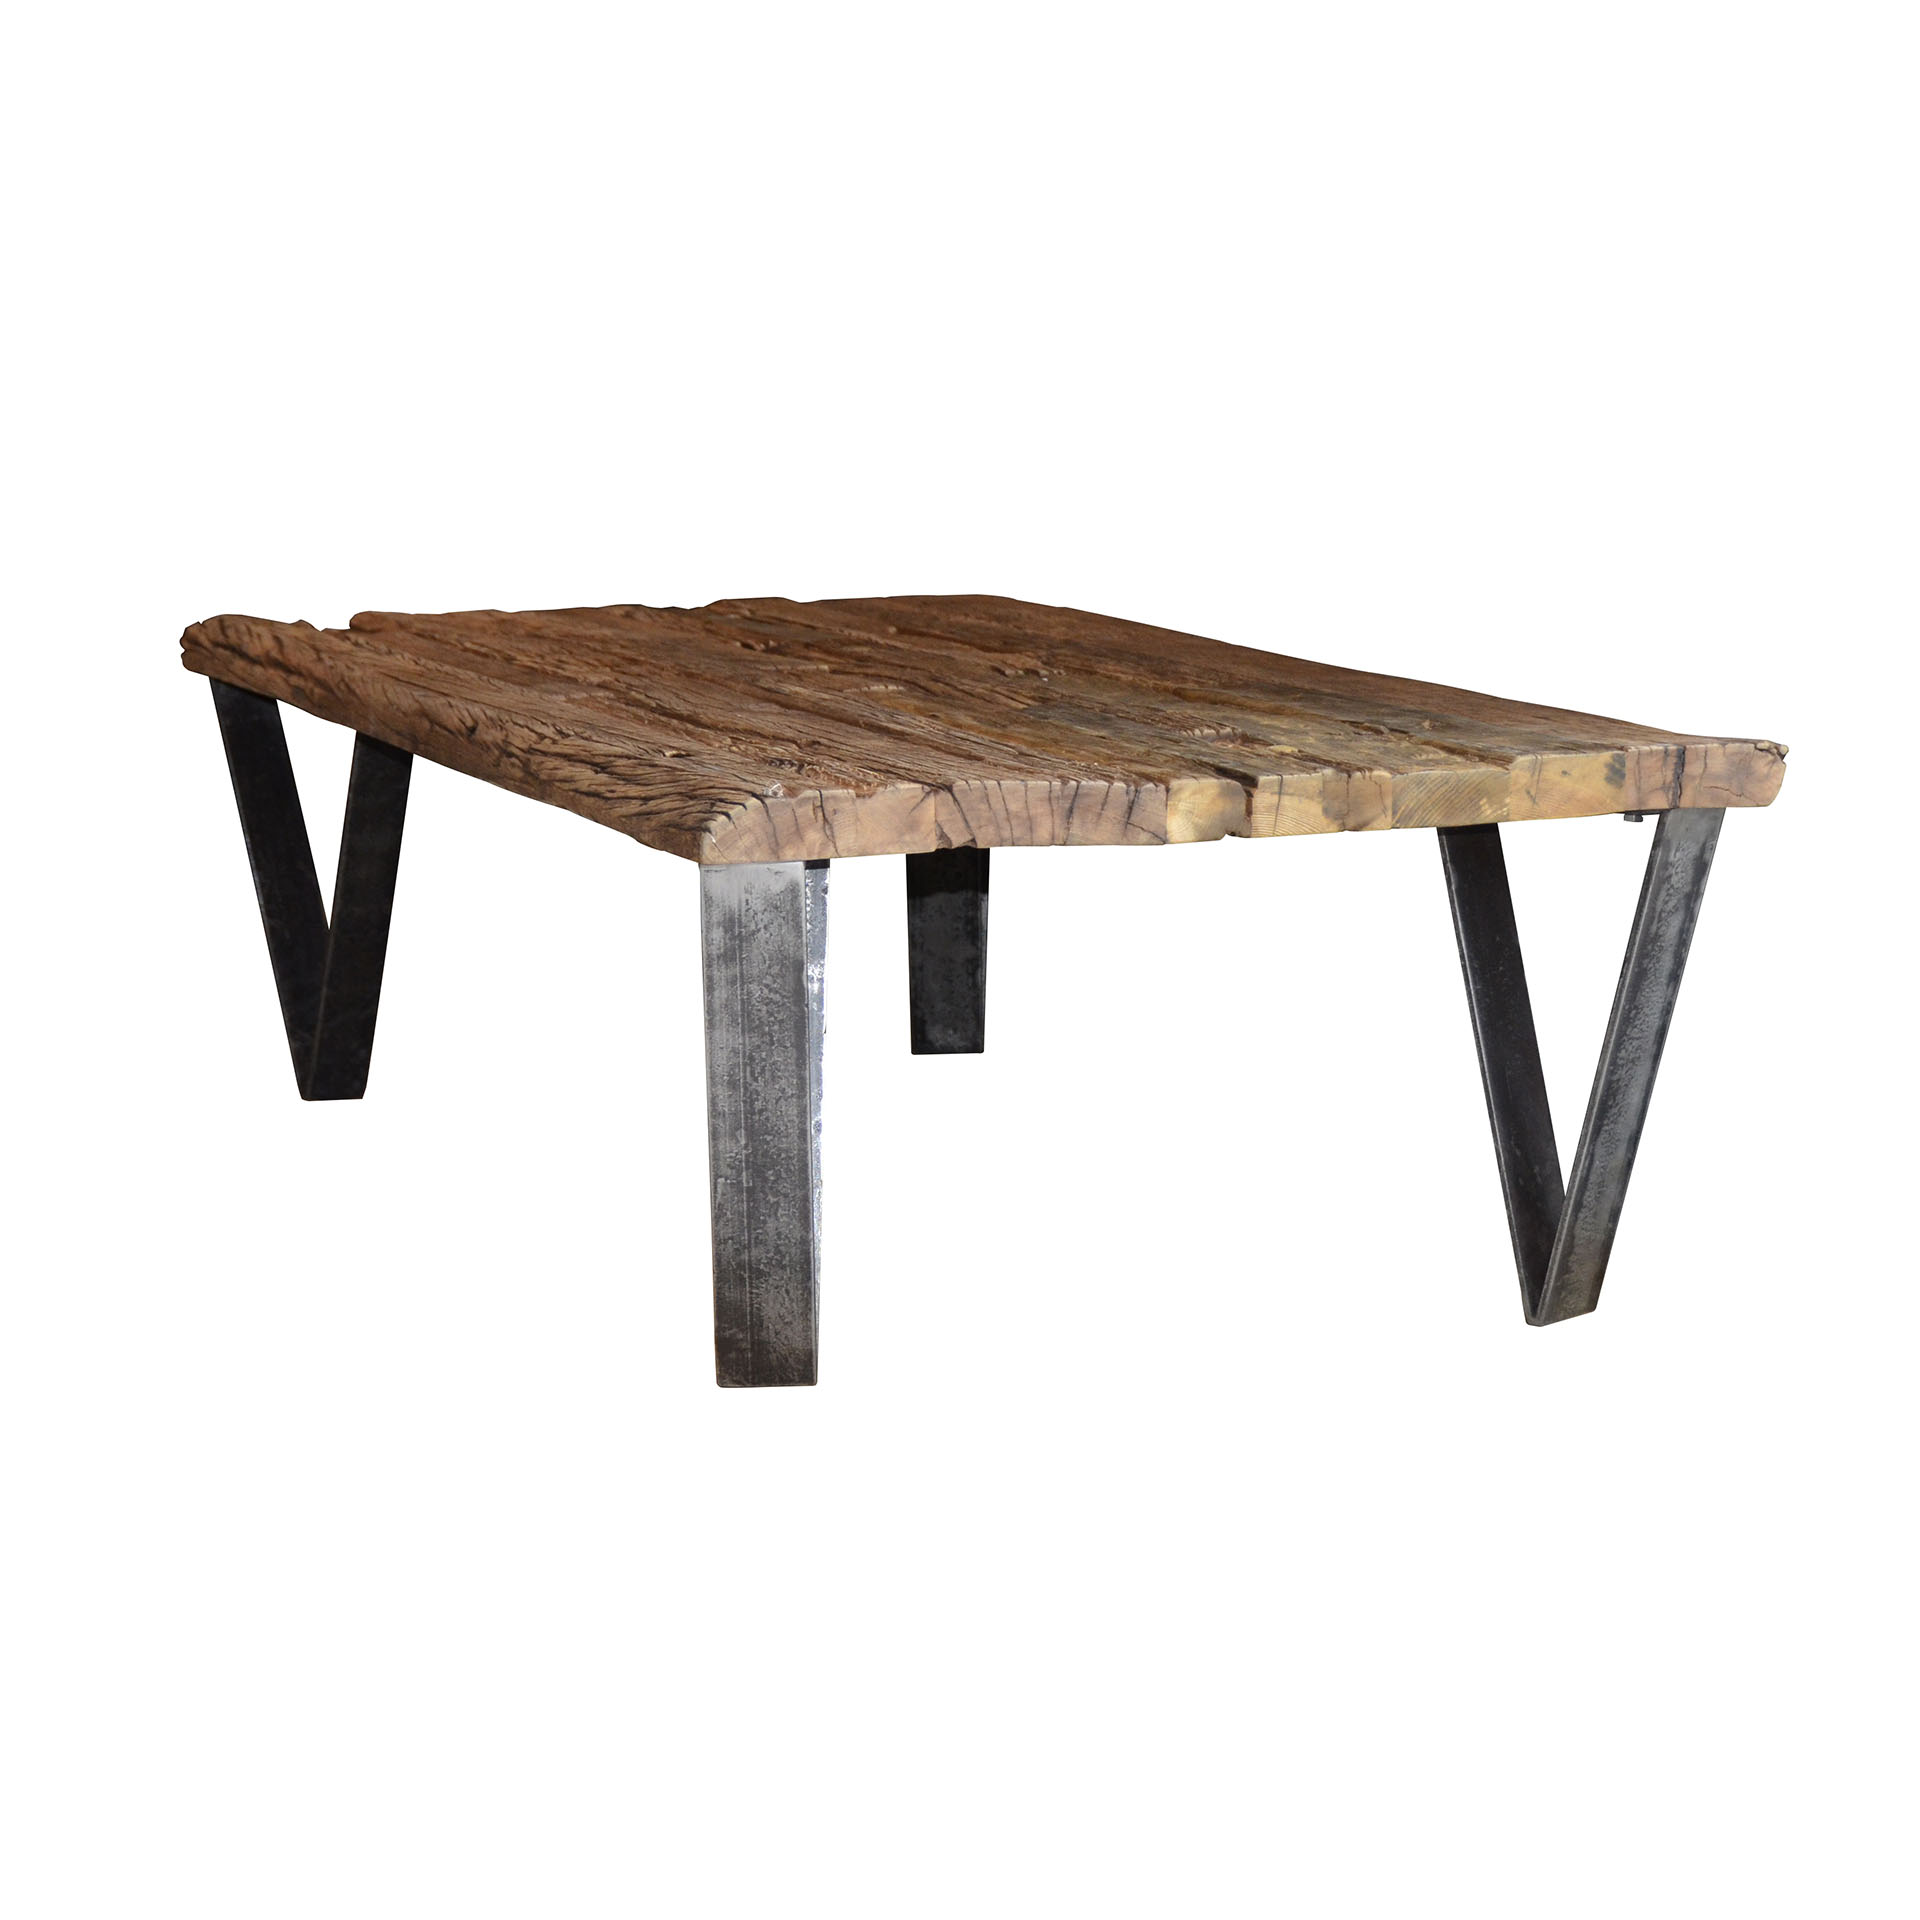 Pied Table Basse Metal.Table Basse Teck Recycle Pieds Metal 135x75cm Omsk